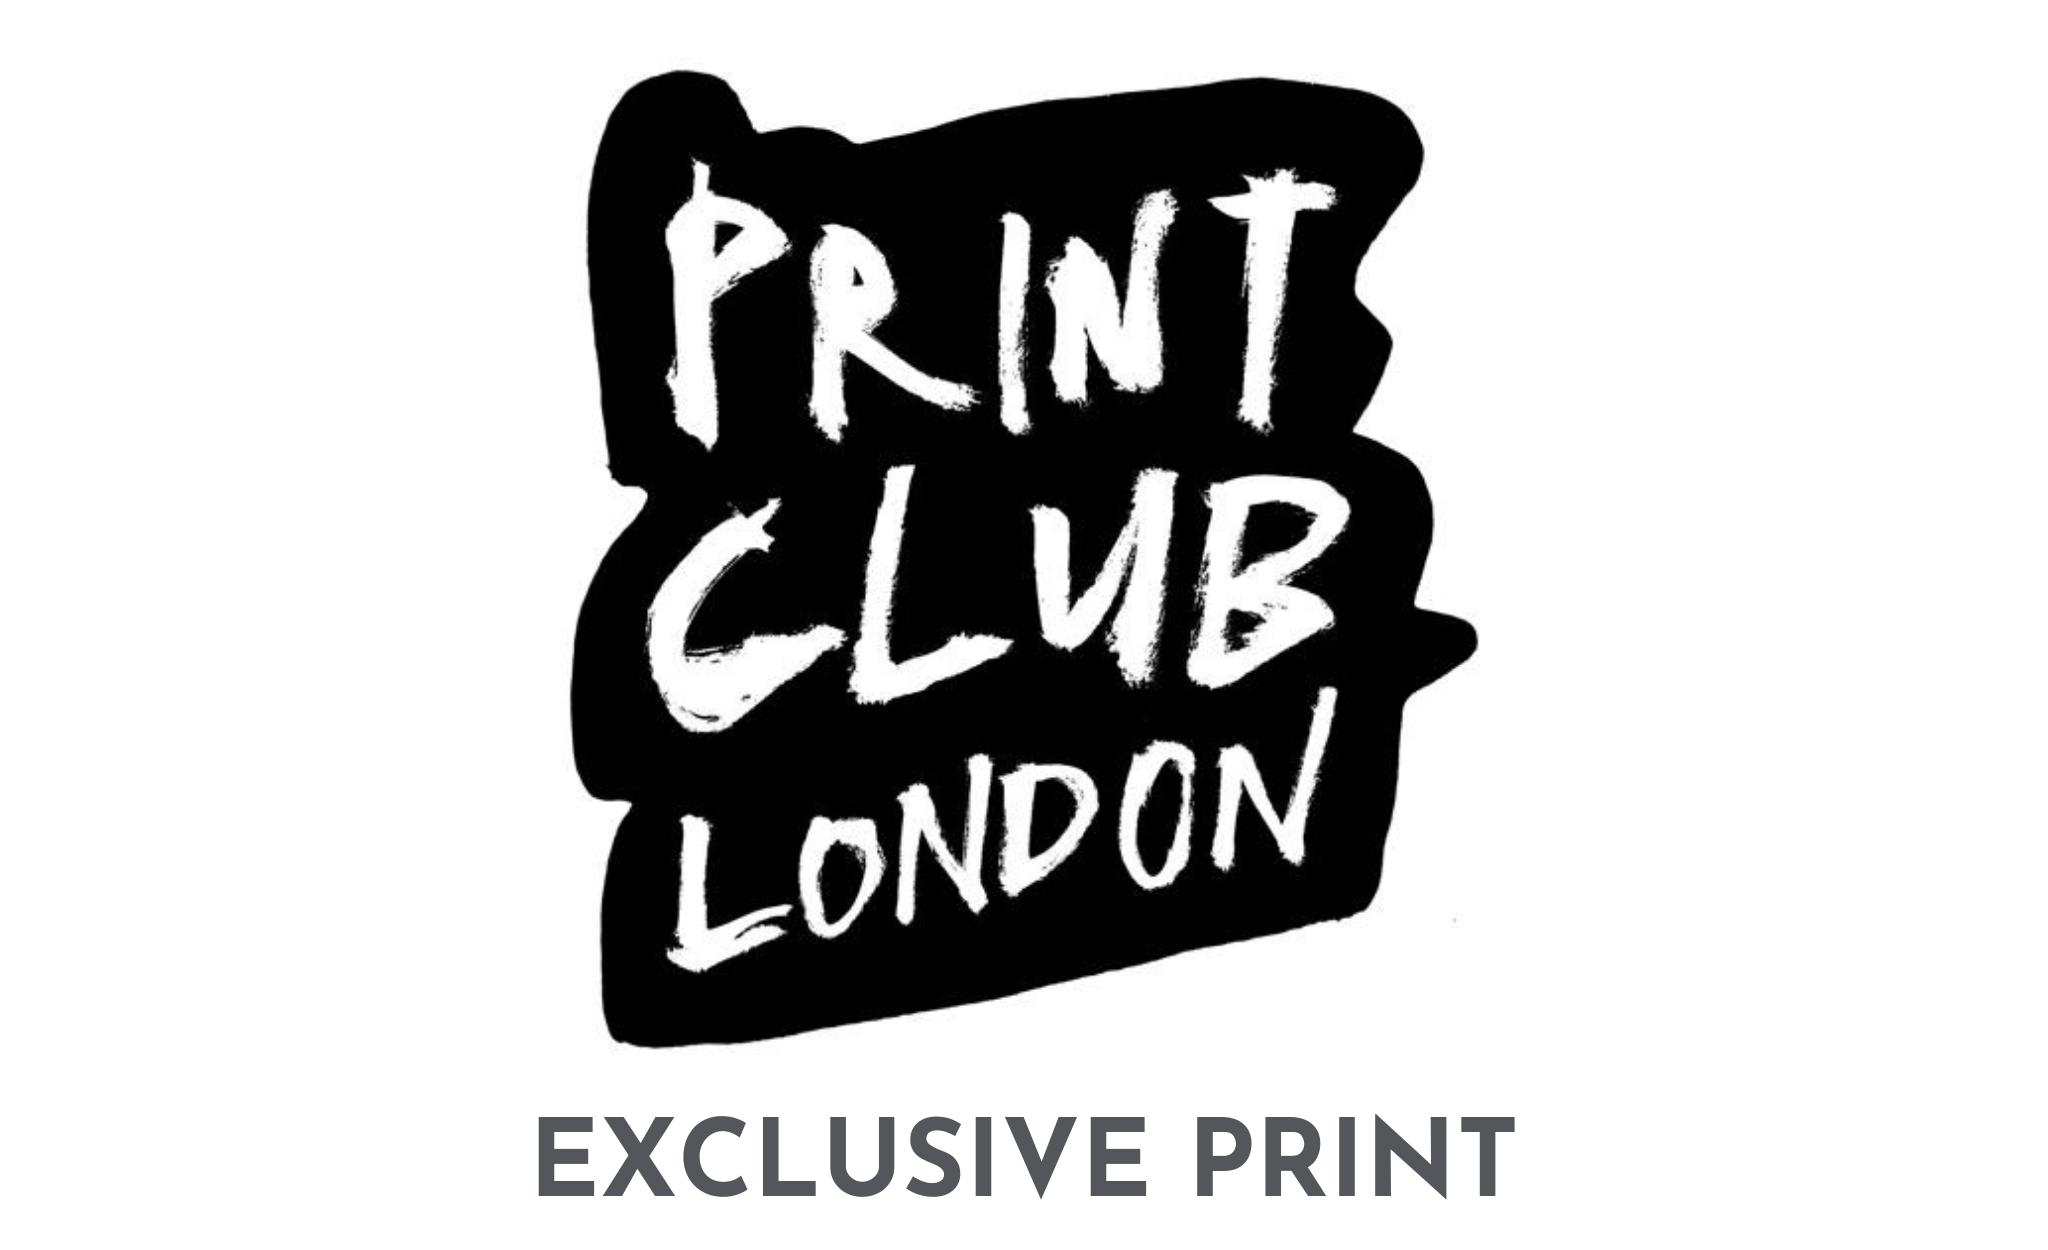 Kin and Castle exclusive Print Club London Art print YES!